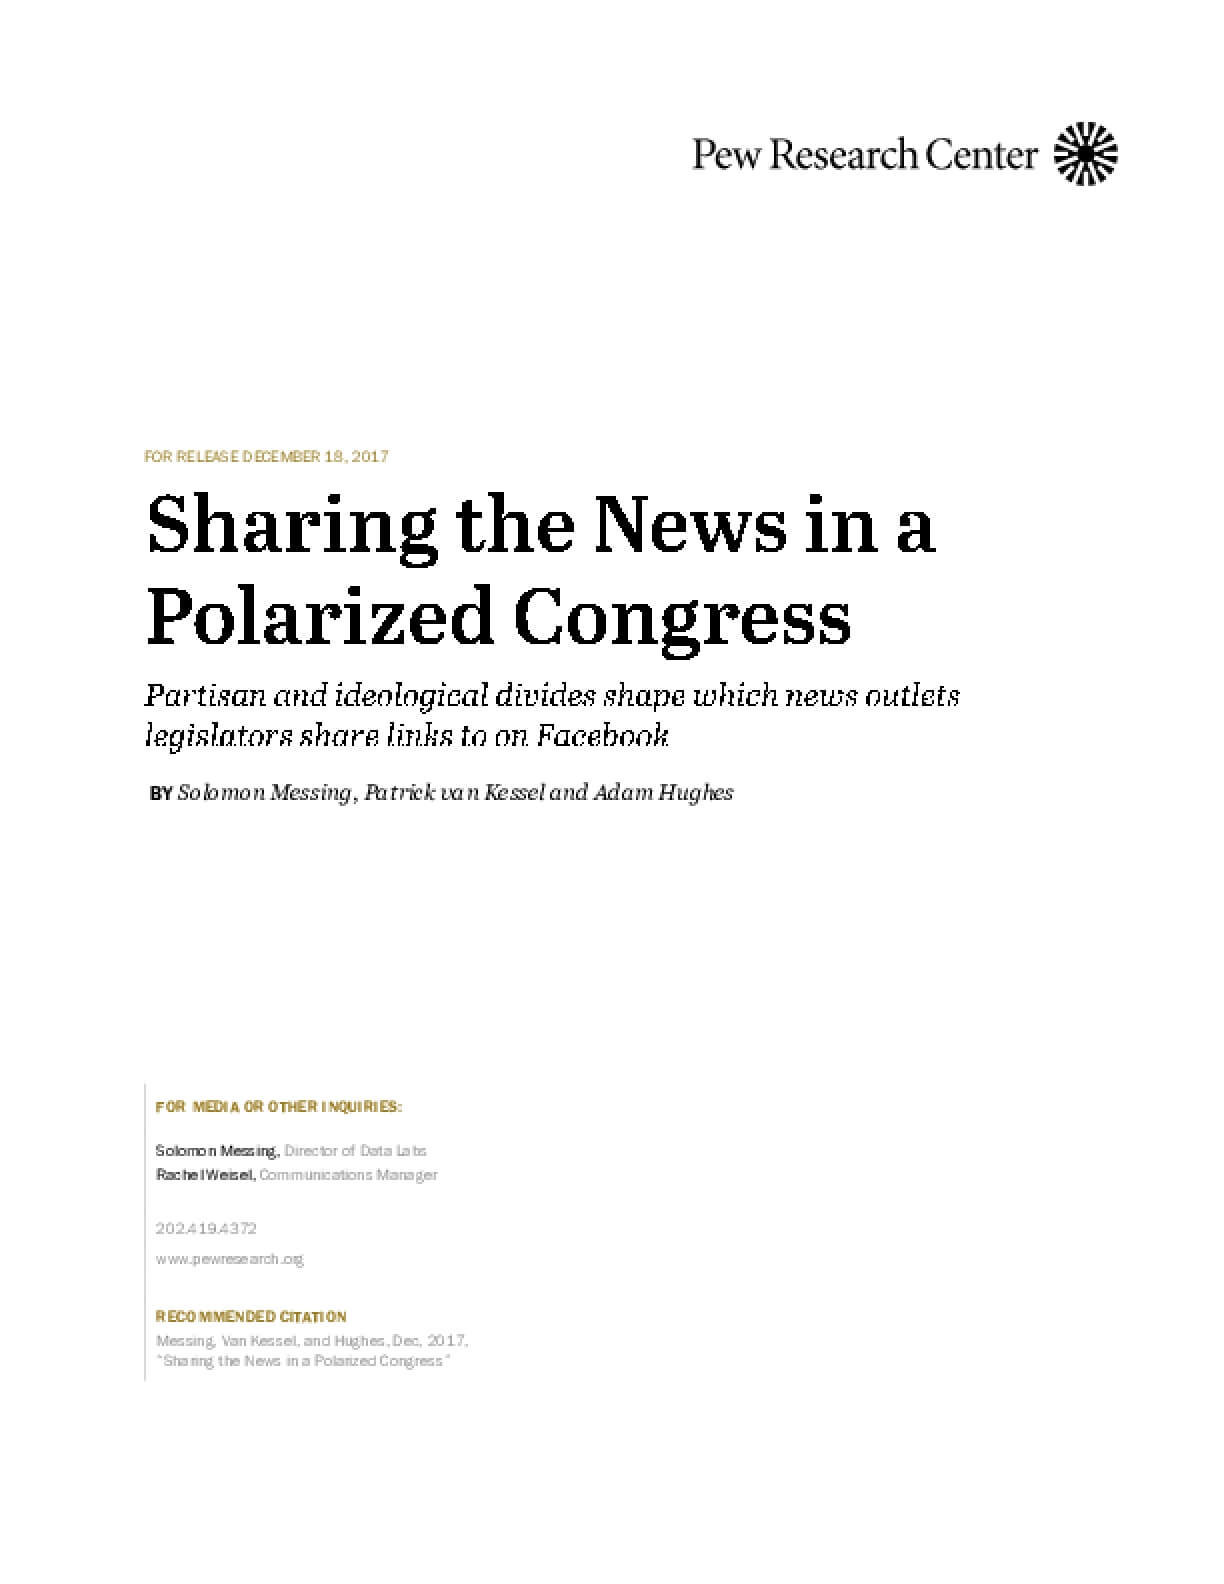 Sharing the News in a Polarized Congress